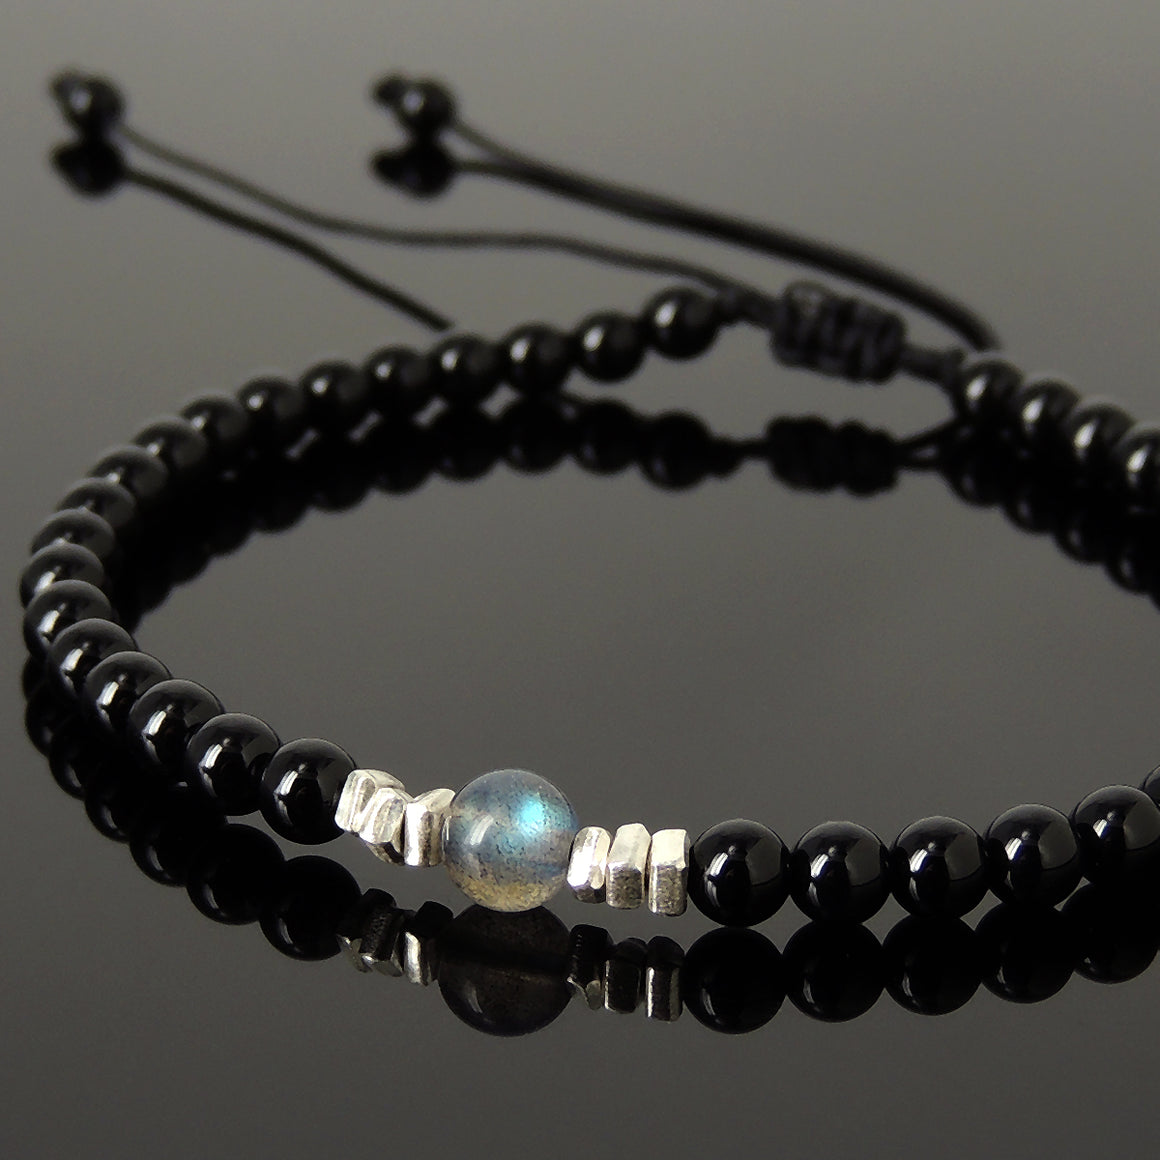 Grade 5A Labradorite & Bright Black Onyx Adjustable Braided Bracelet with S925 Sterling Silver Nugget Beads - Handmade by Gem & Silver BR1206